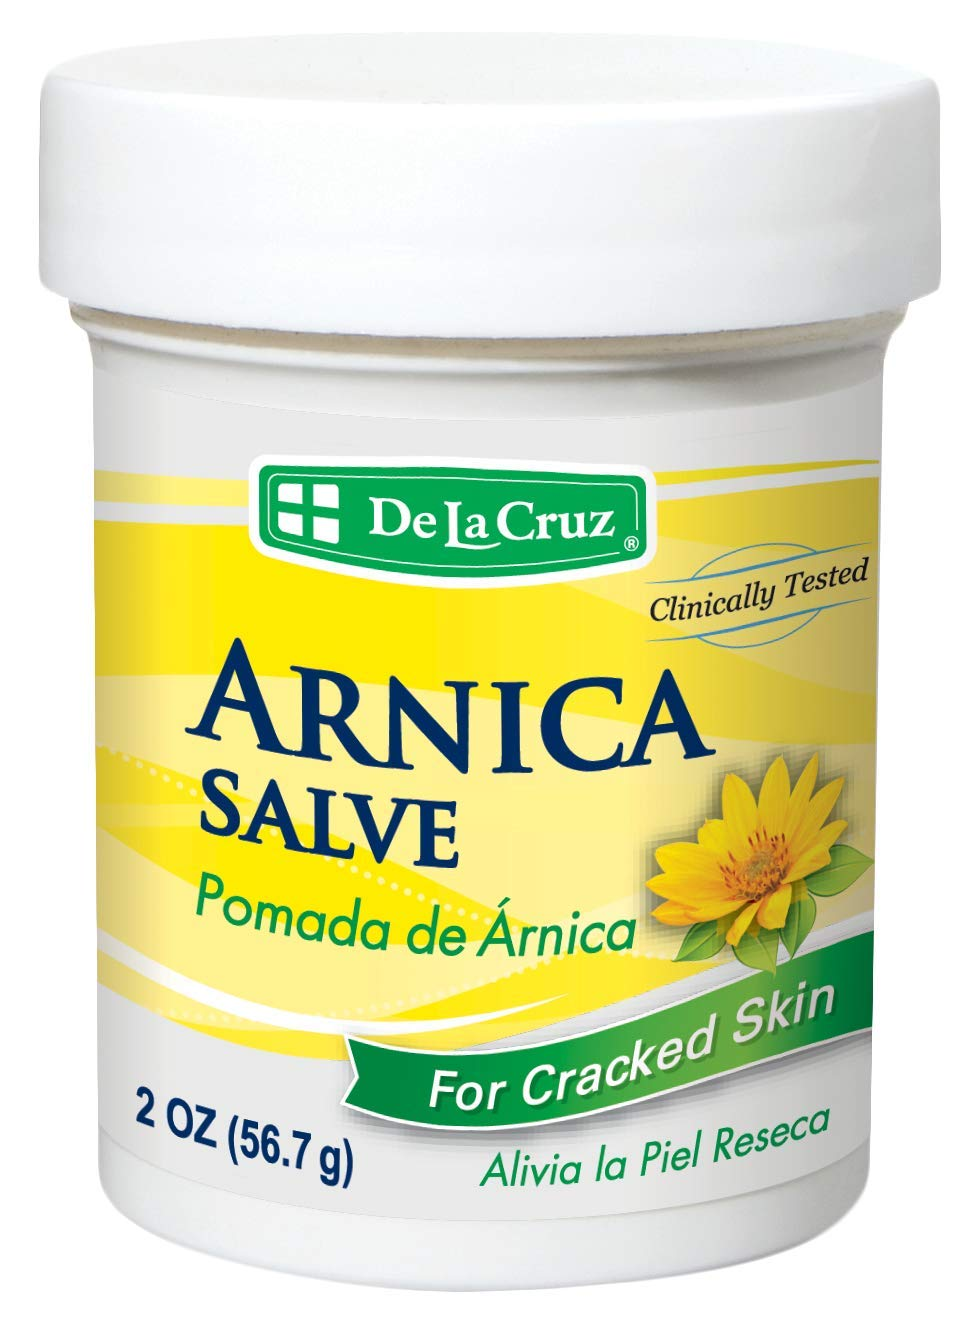 De La Cruz Arnica Salve for Cracked Skin/No Preservatives, Colors or Fragrances/Allergy Tested/Made in USA 2 OZ. Everready First Aid B004DFOY46